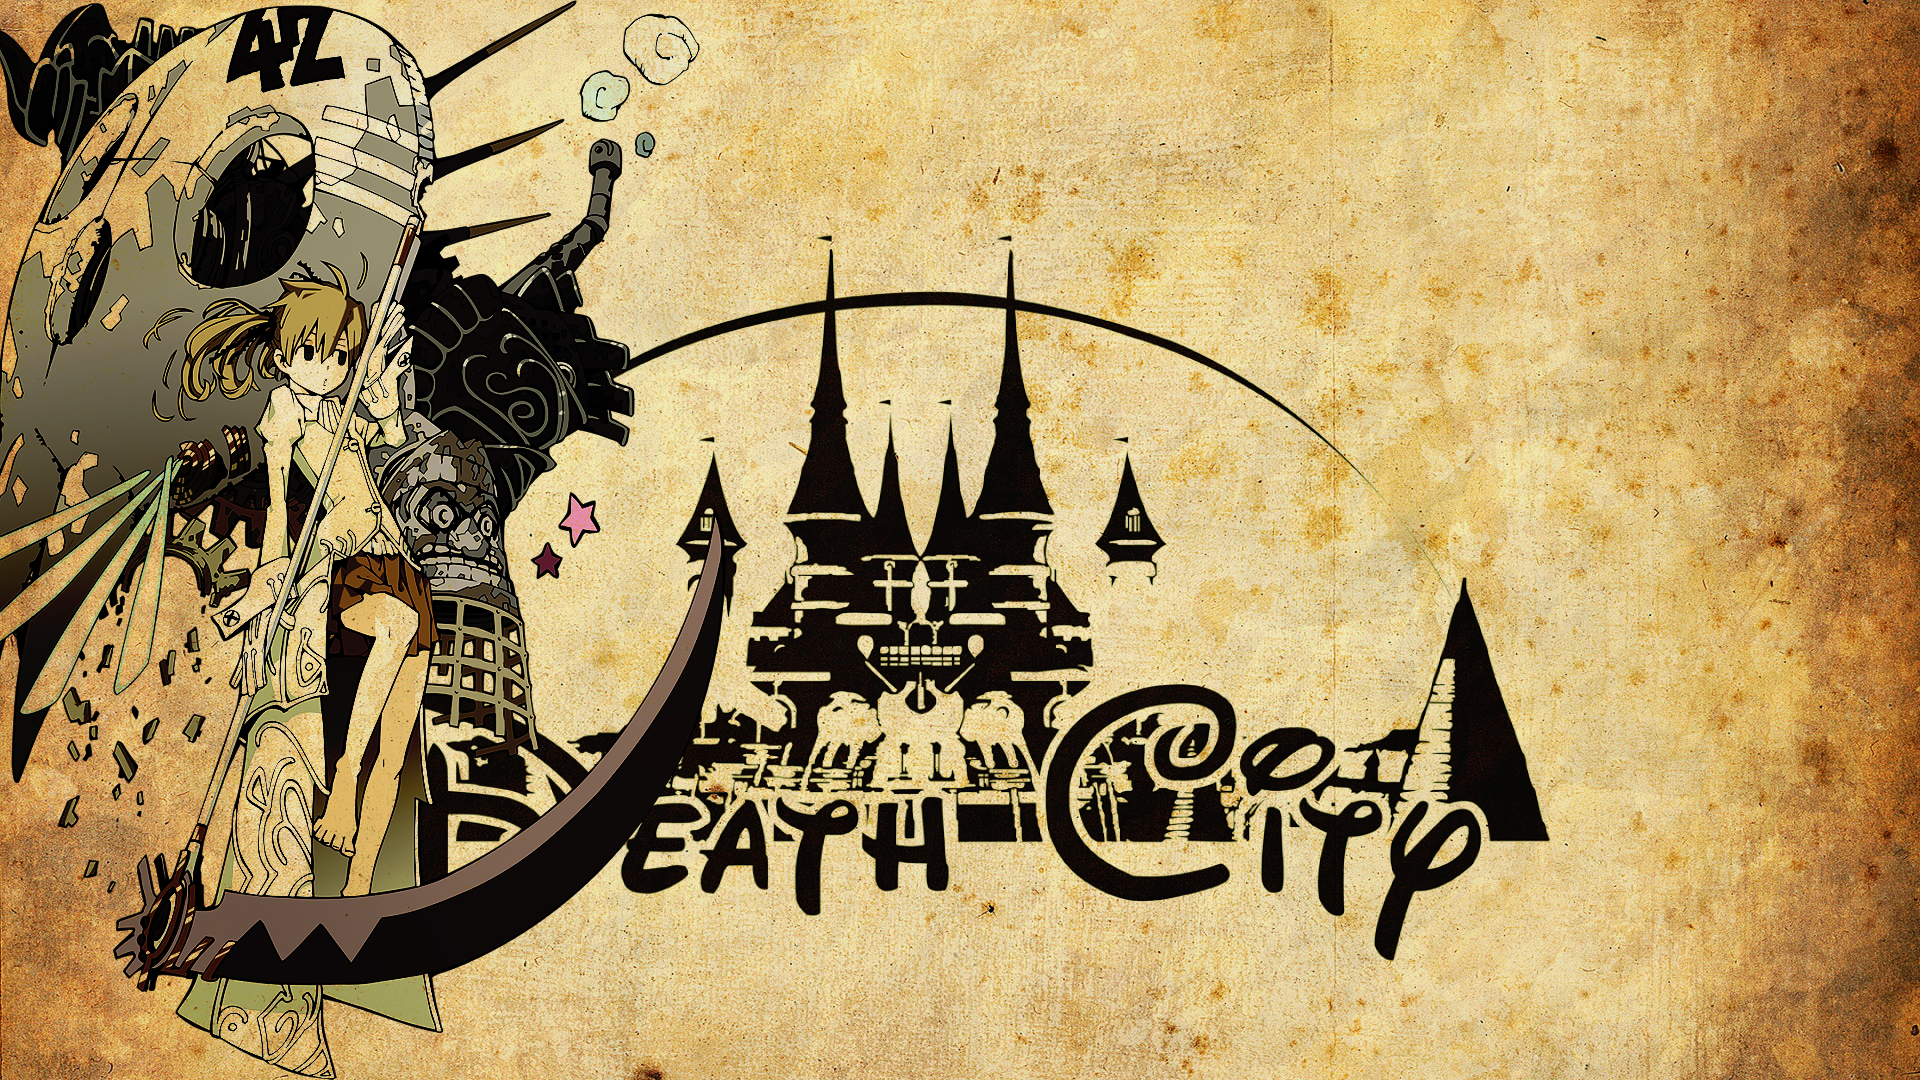 death city soul eater wallpaper by siimeo on deviantart